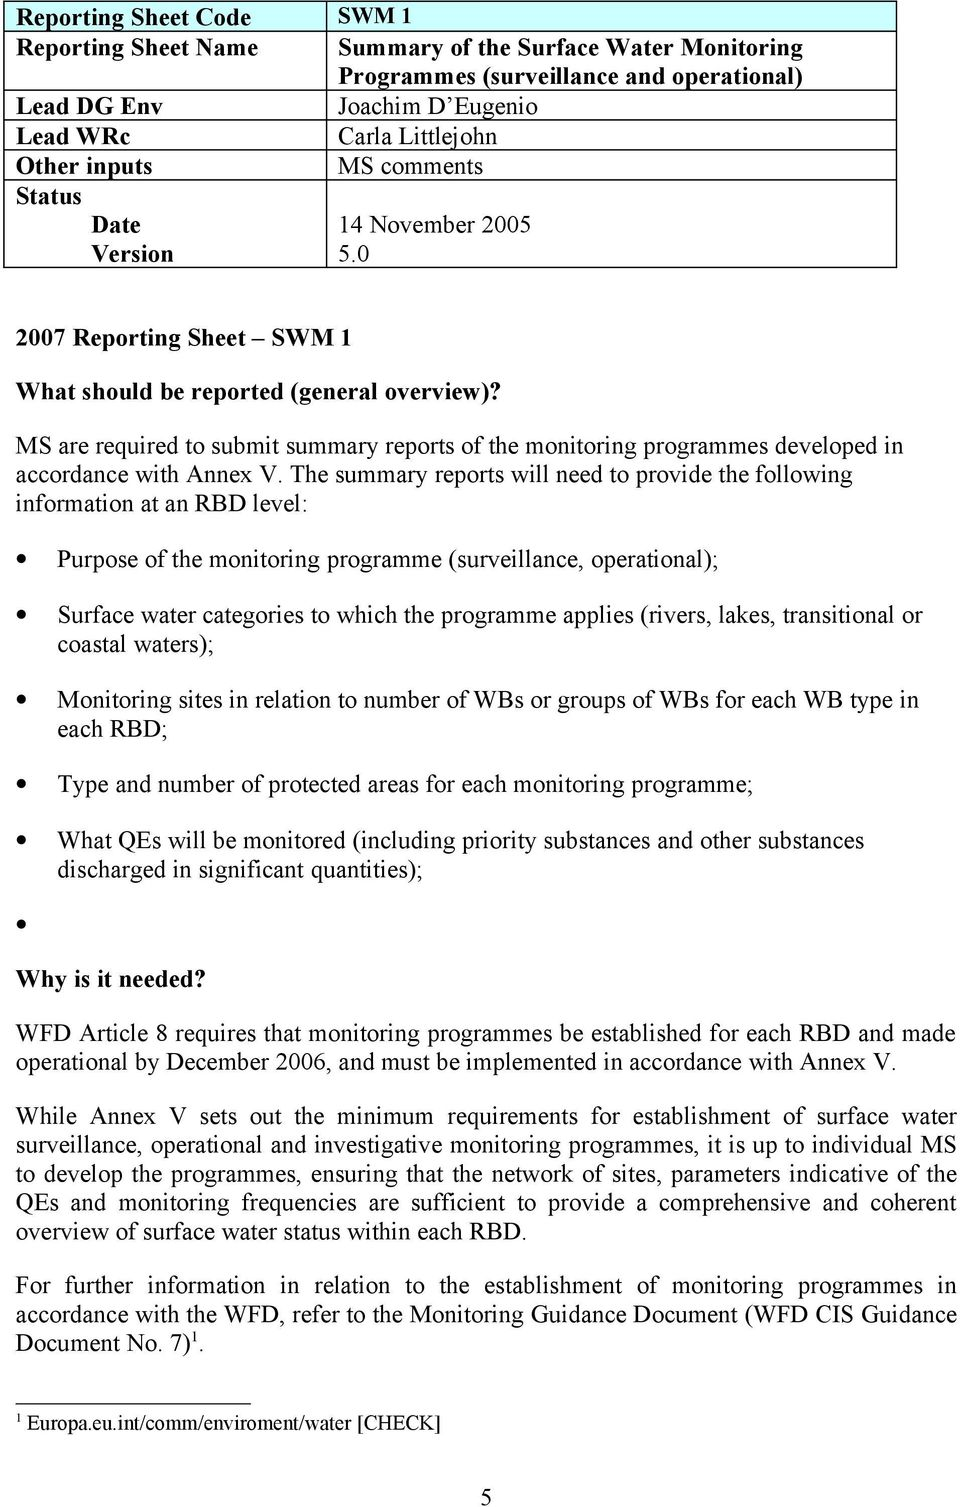 MS are required to submit summary reports of the monitoring programmes developed in accordance with Annex V.